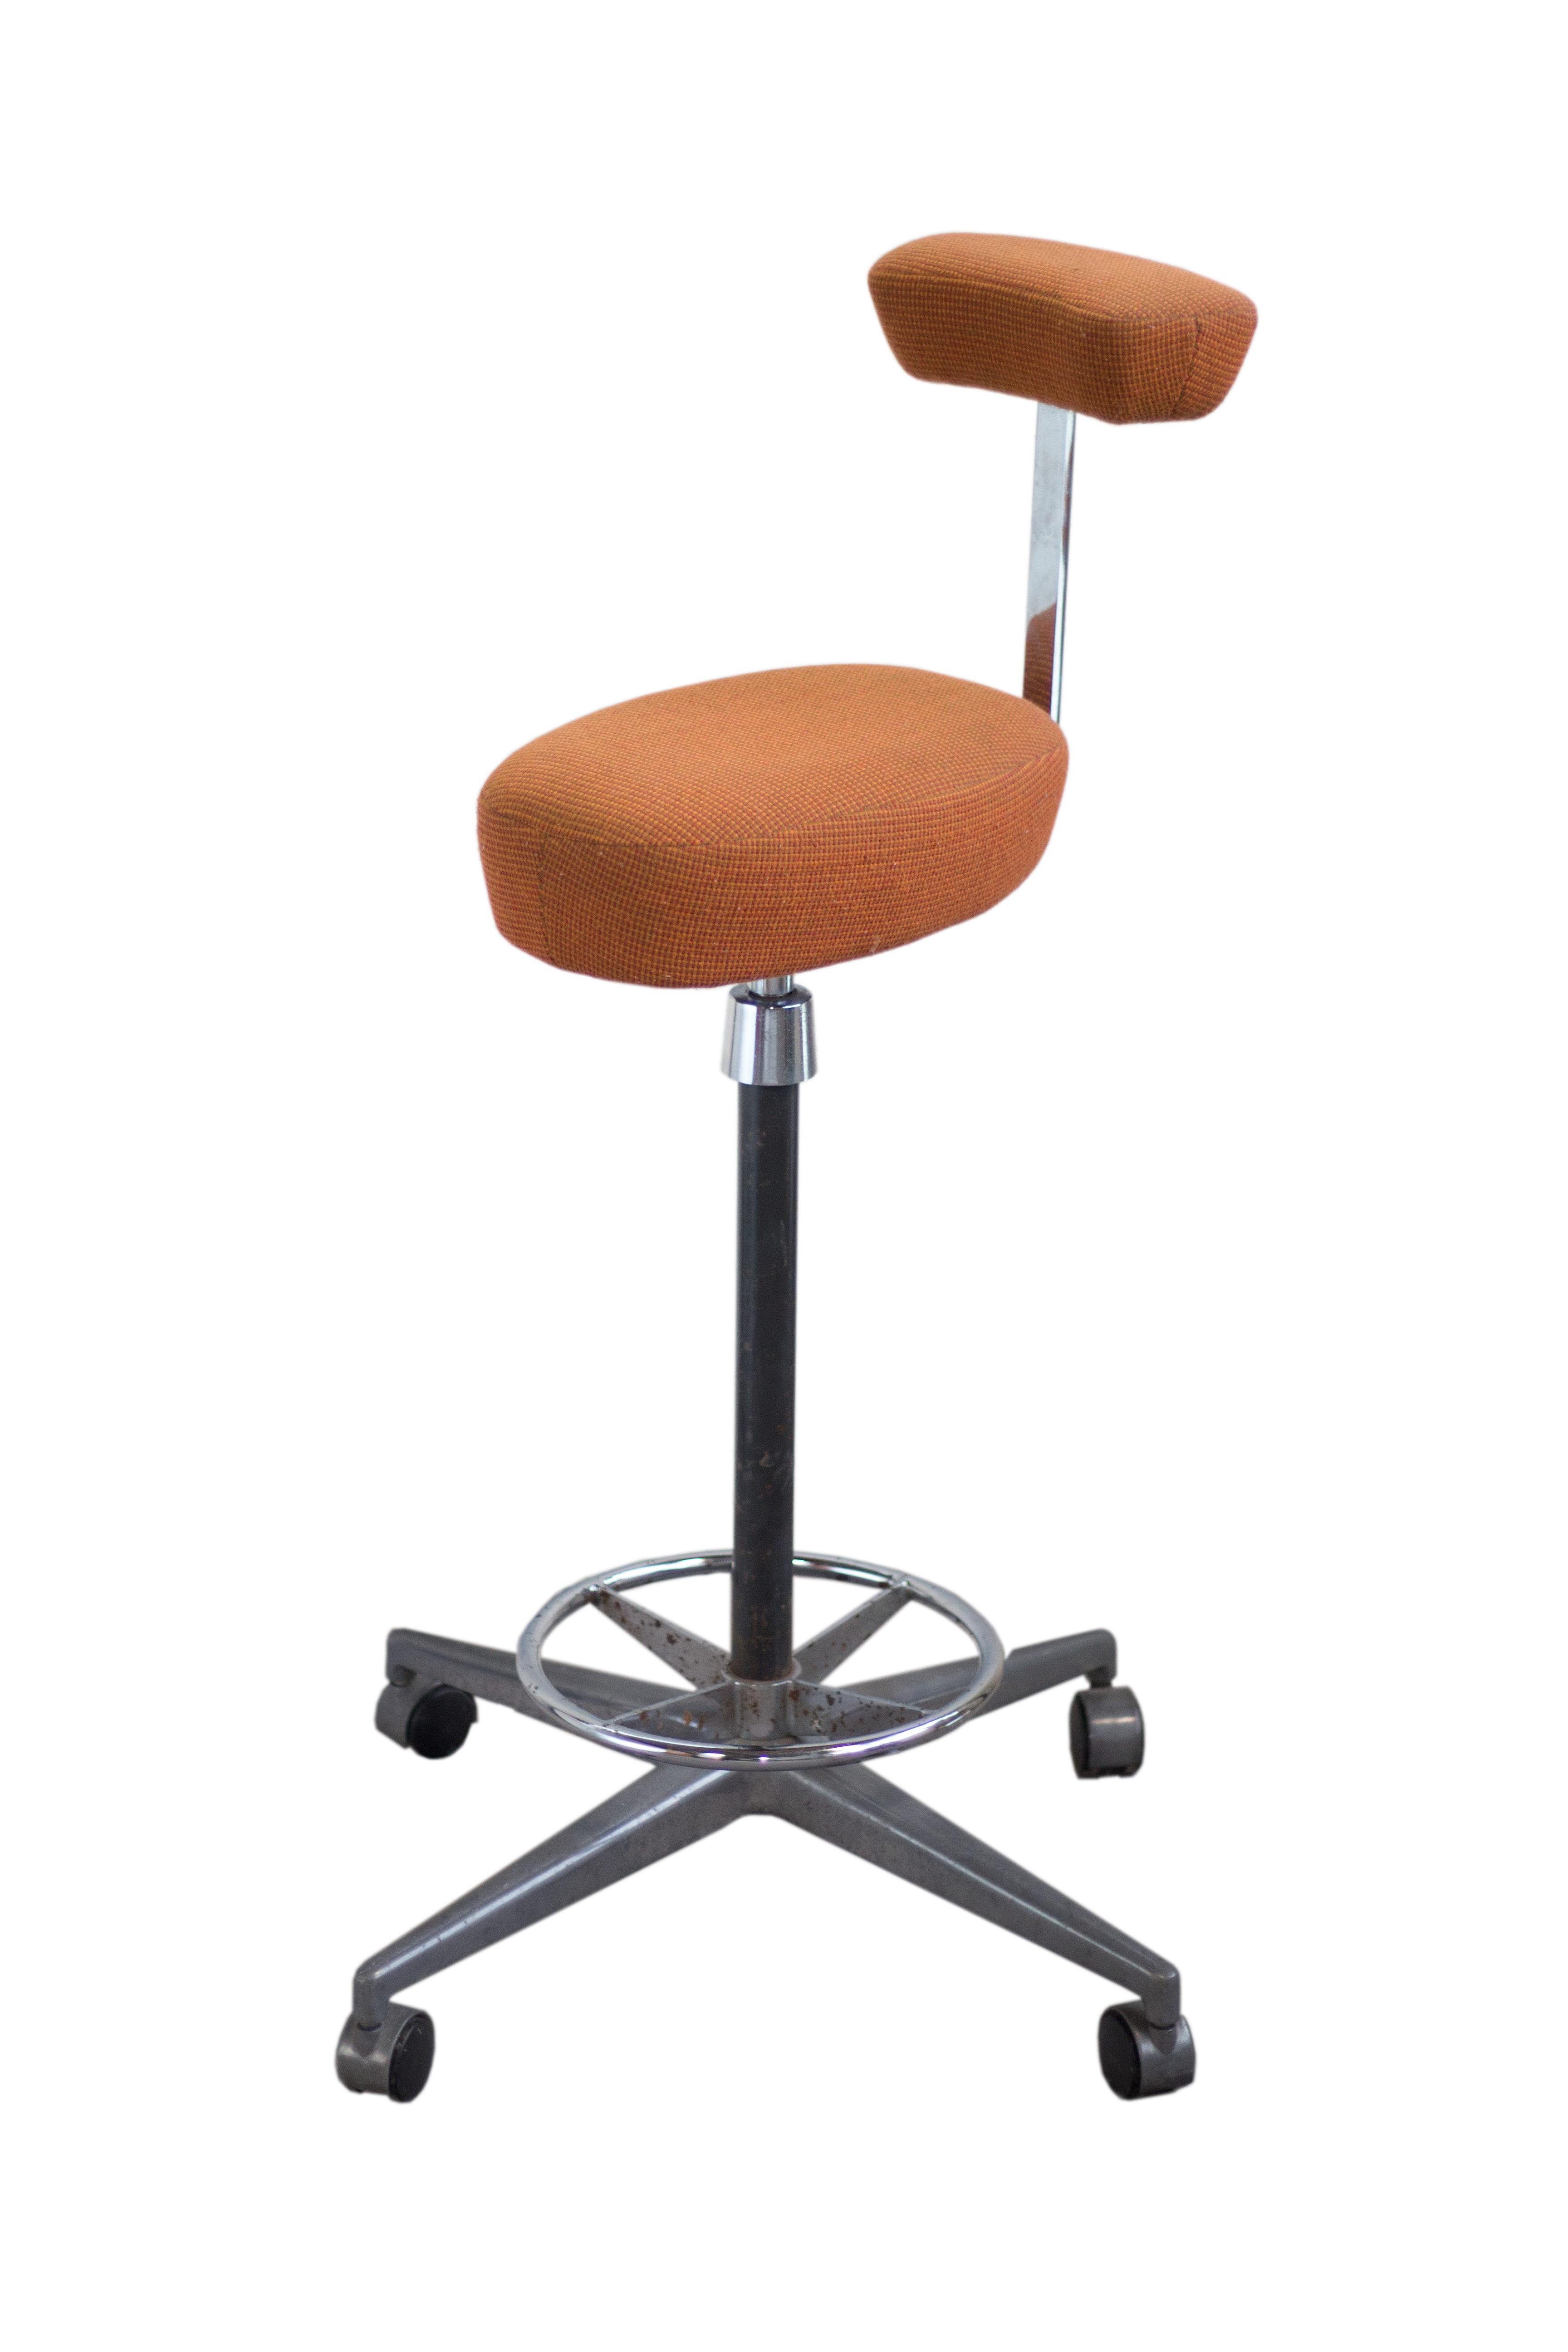 Herman Miller George Nelson Probst Perch Stool Chairish